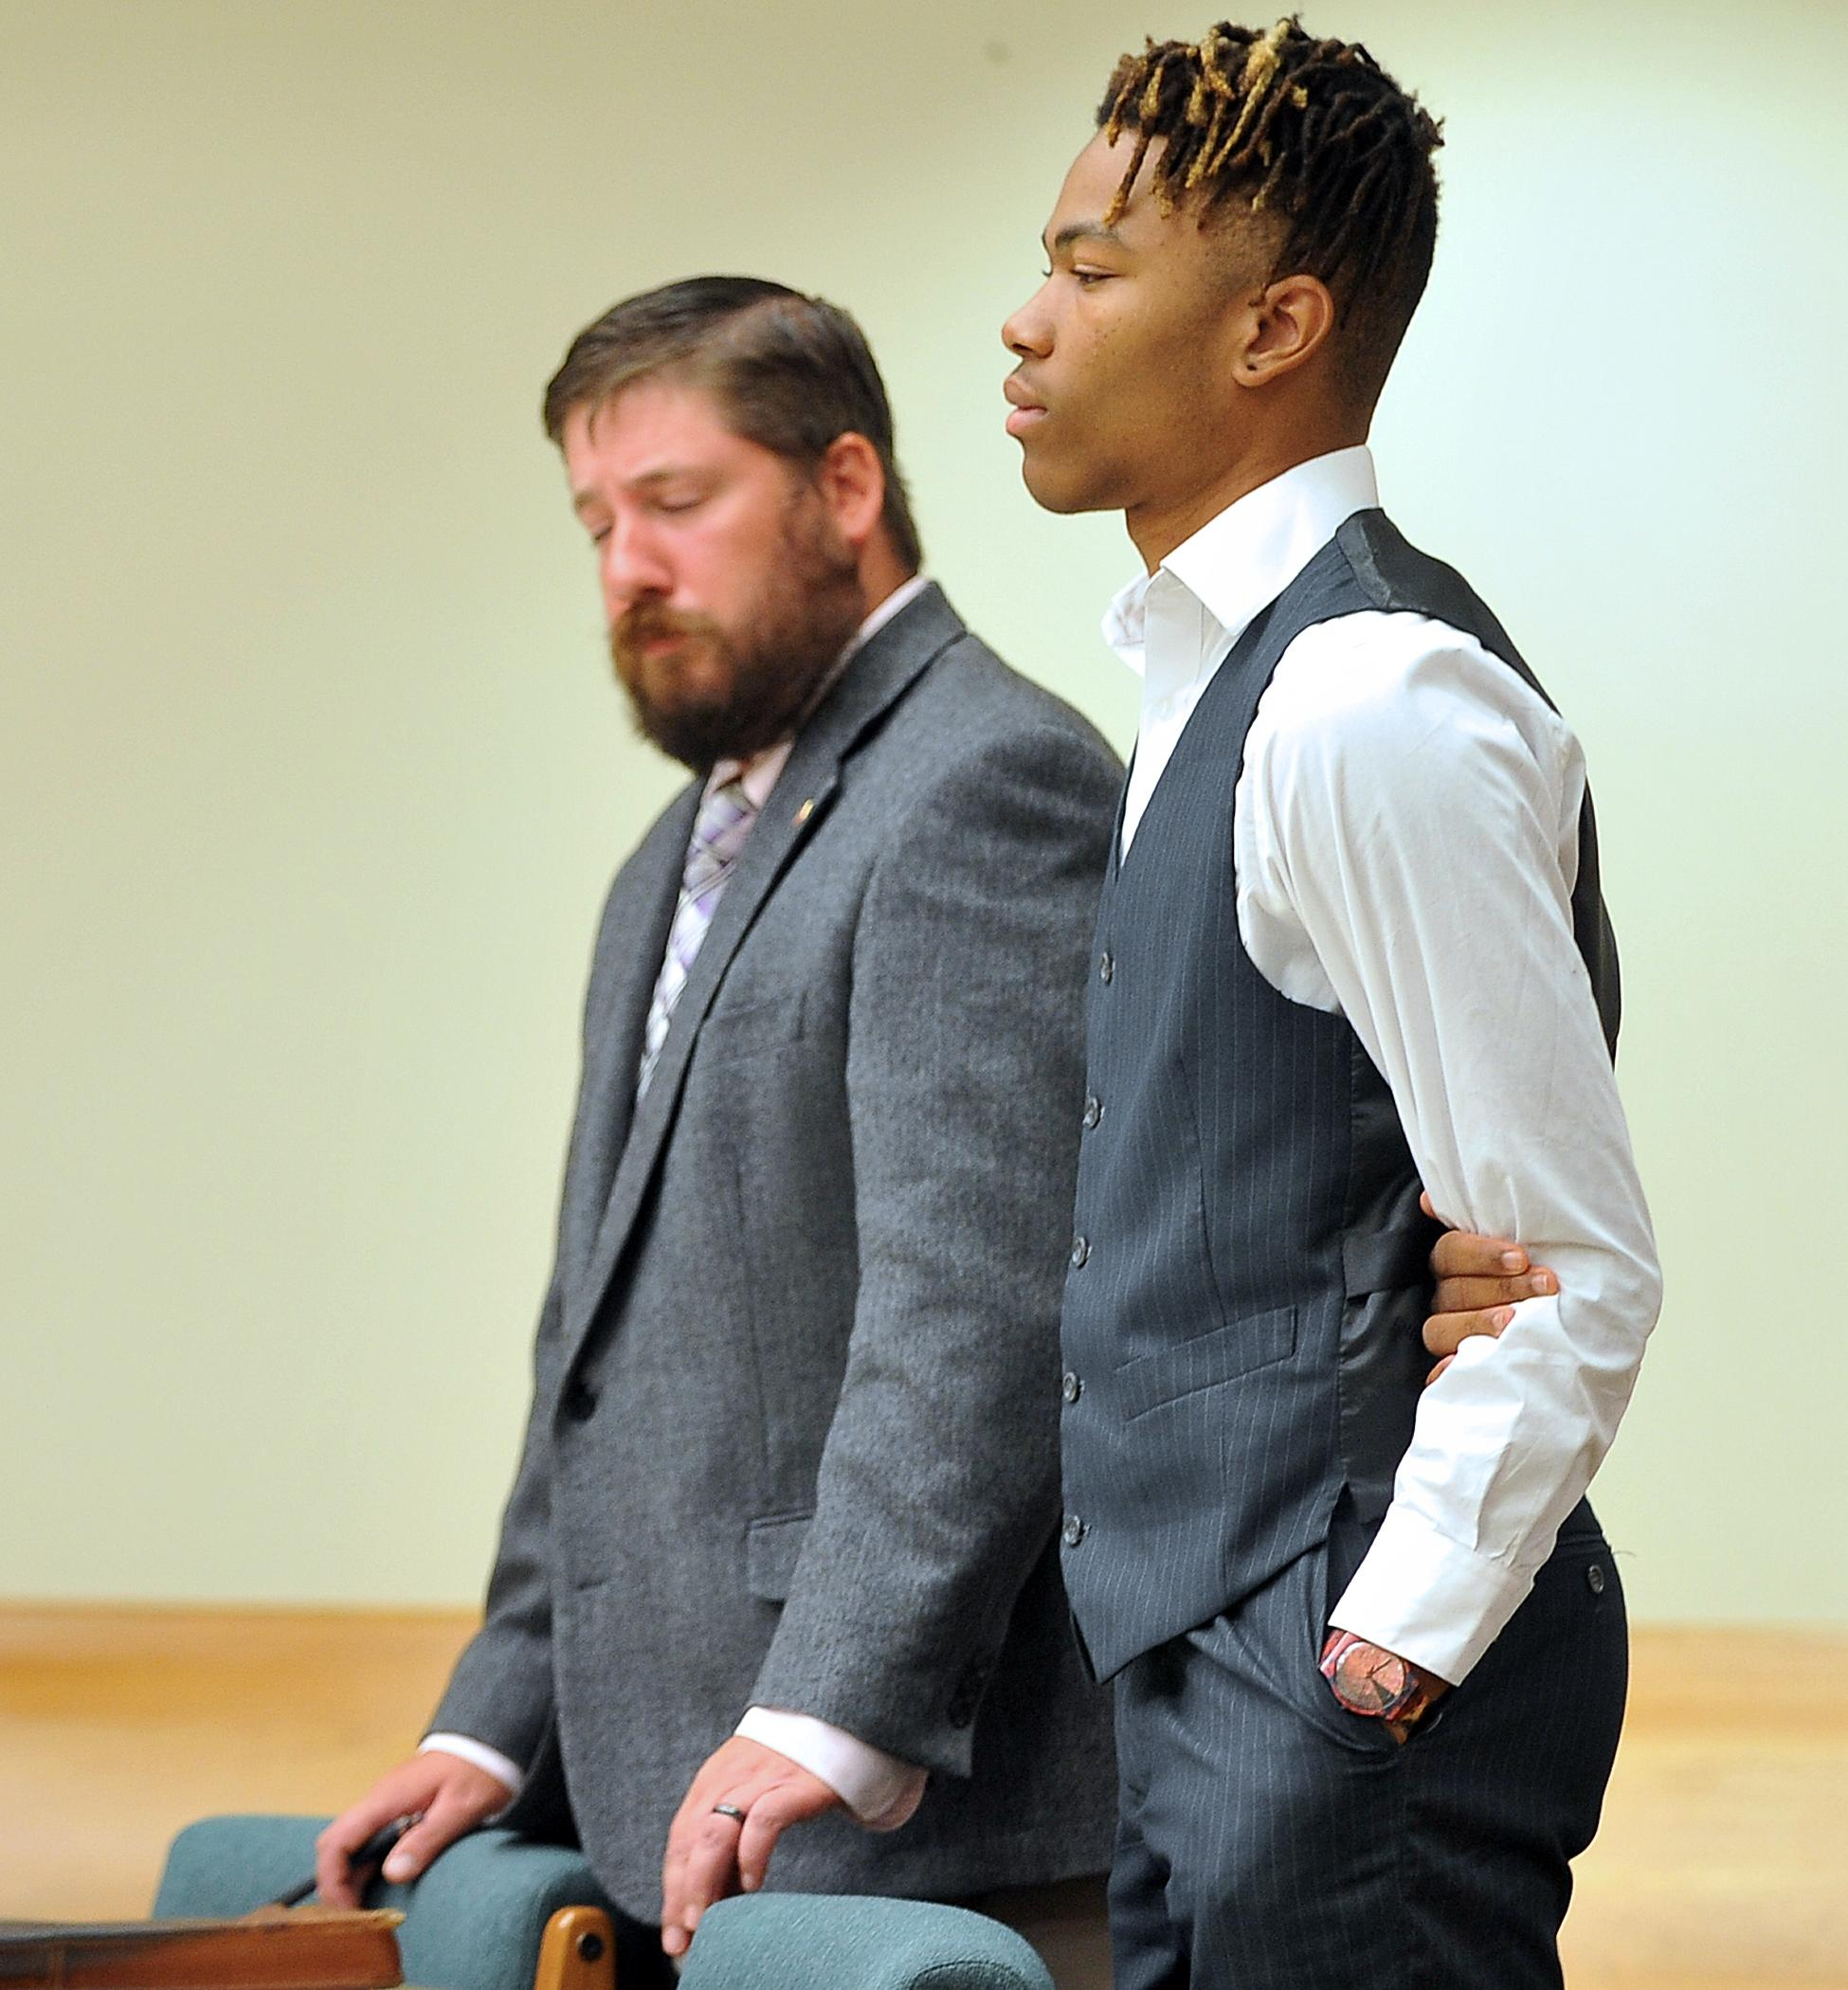 Melchizedek Michael Jaleel Elshalom, 18, enters a guilty plea in Jackson County Circuit Court Wednesday for robbing a pizza delivery driver. Mail Tribune / Jamie Lusch